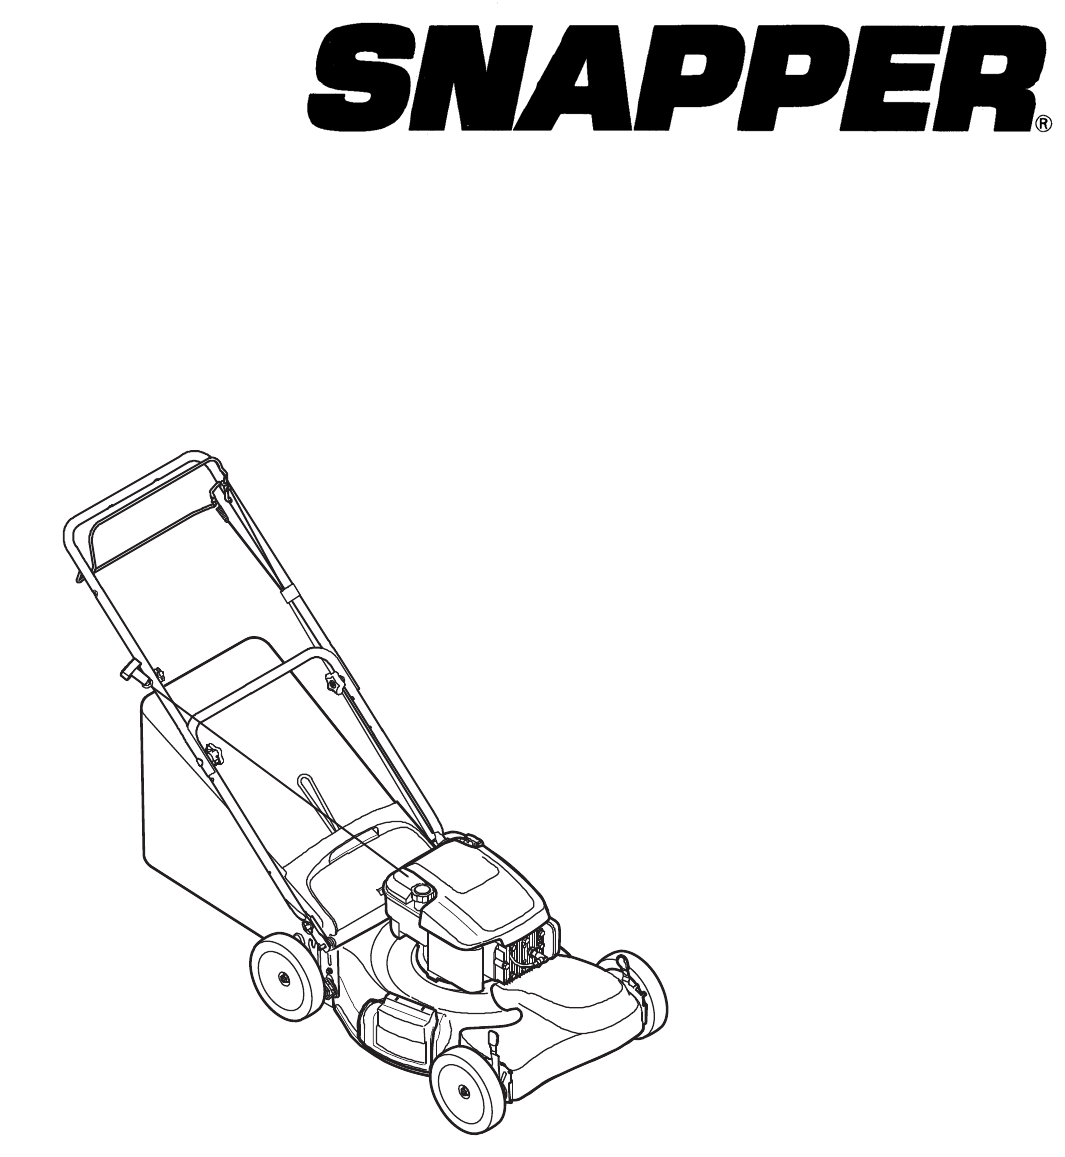 Briggs & Stratton Lawn Mower 7800929-00 SP70 User Guide